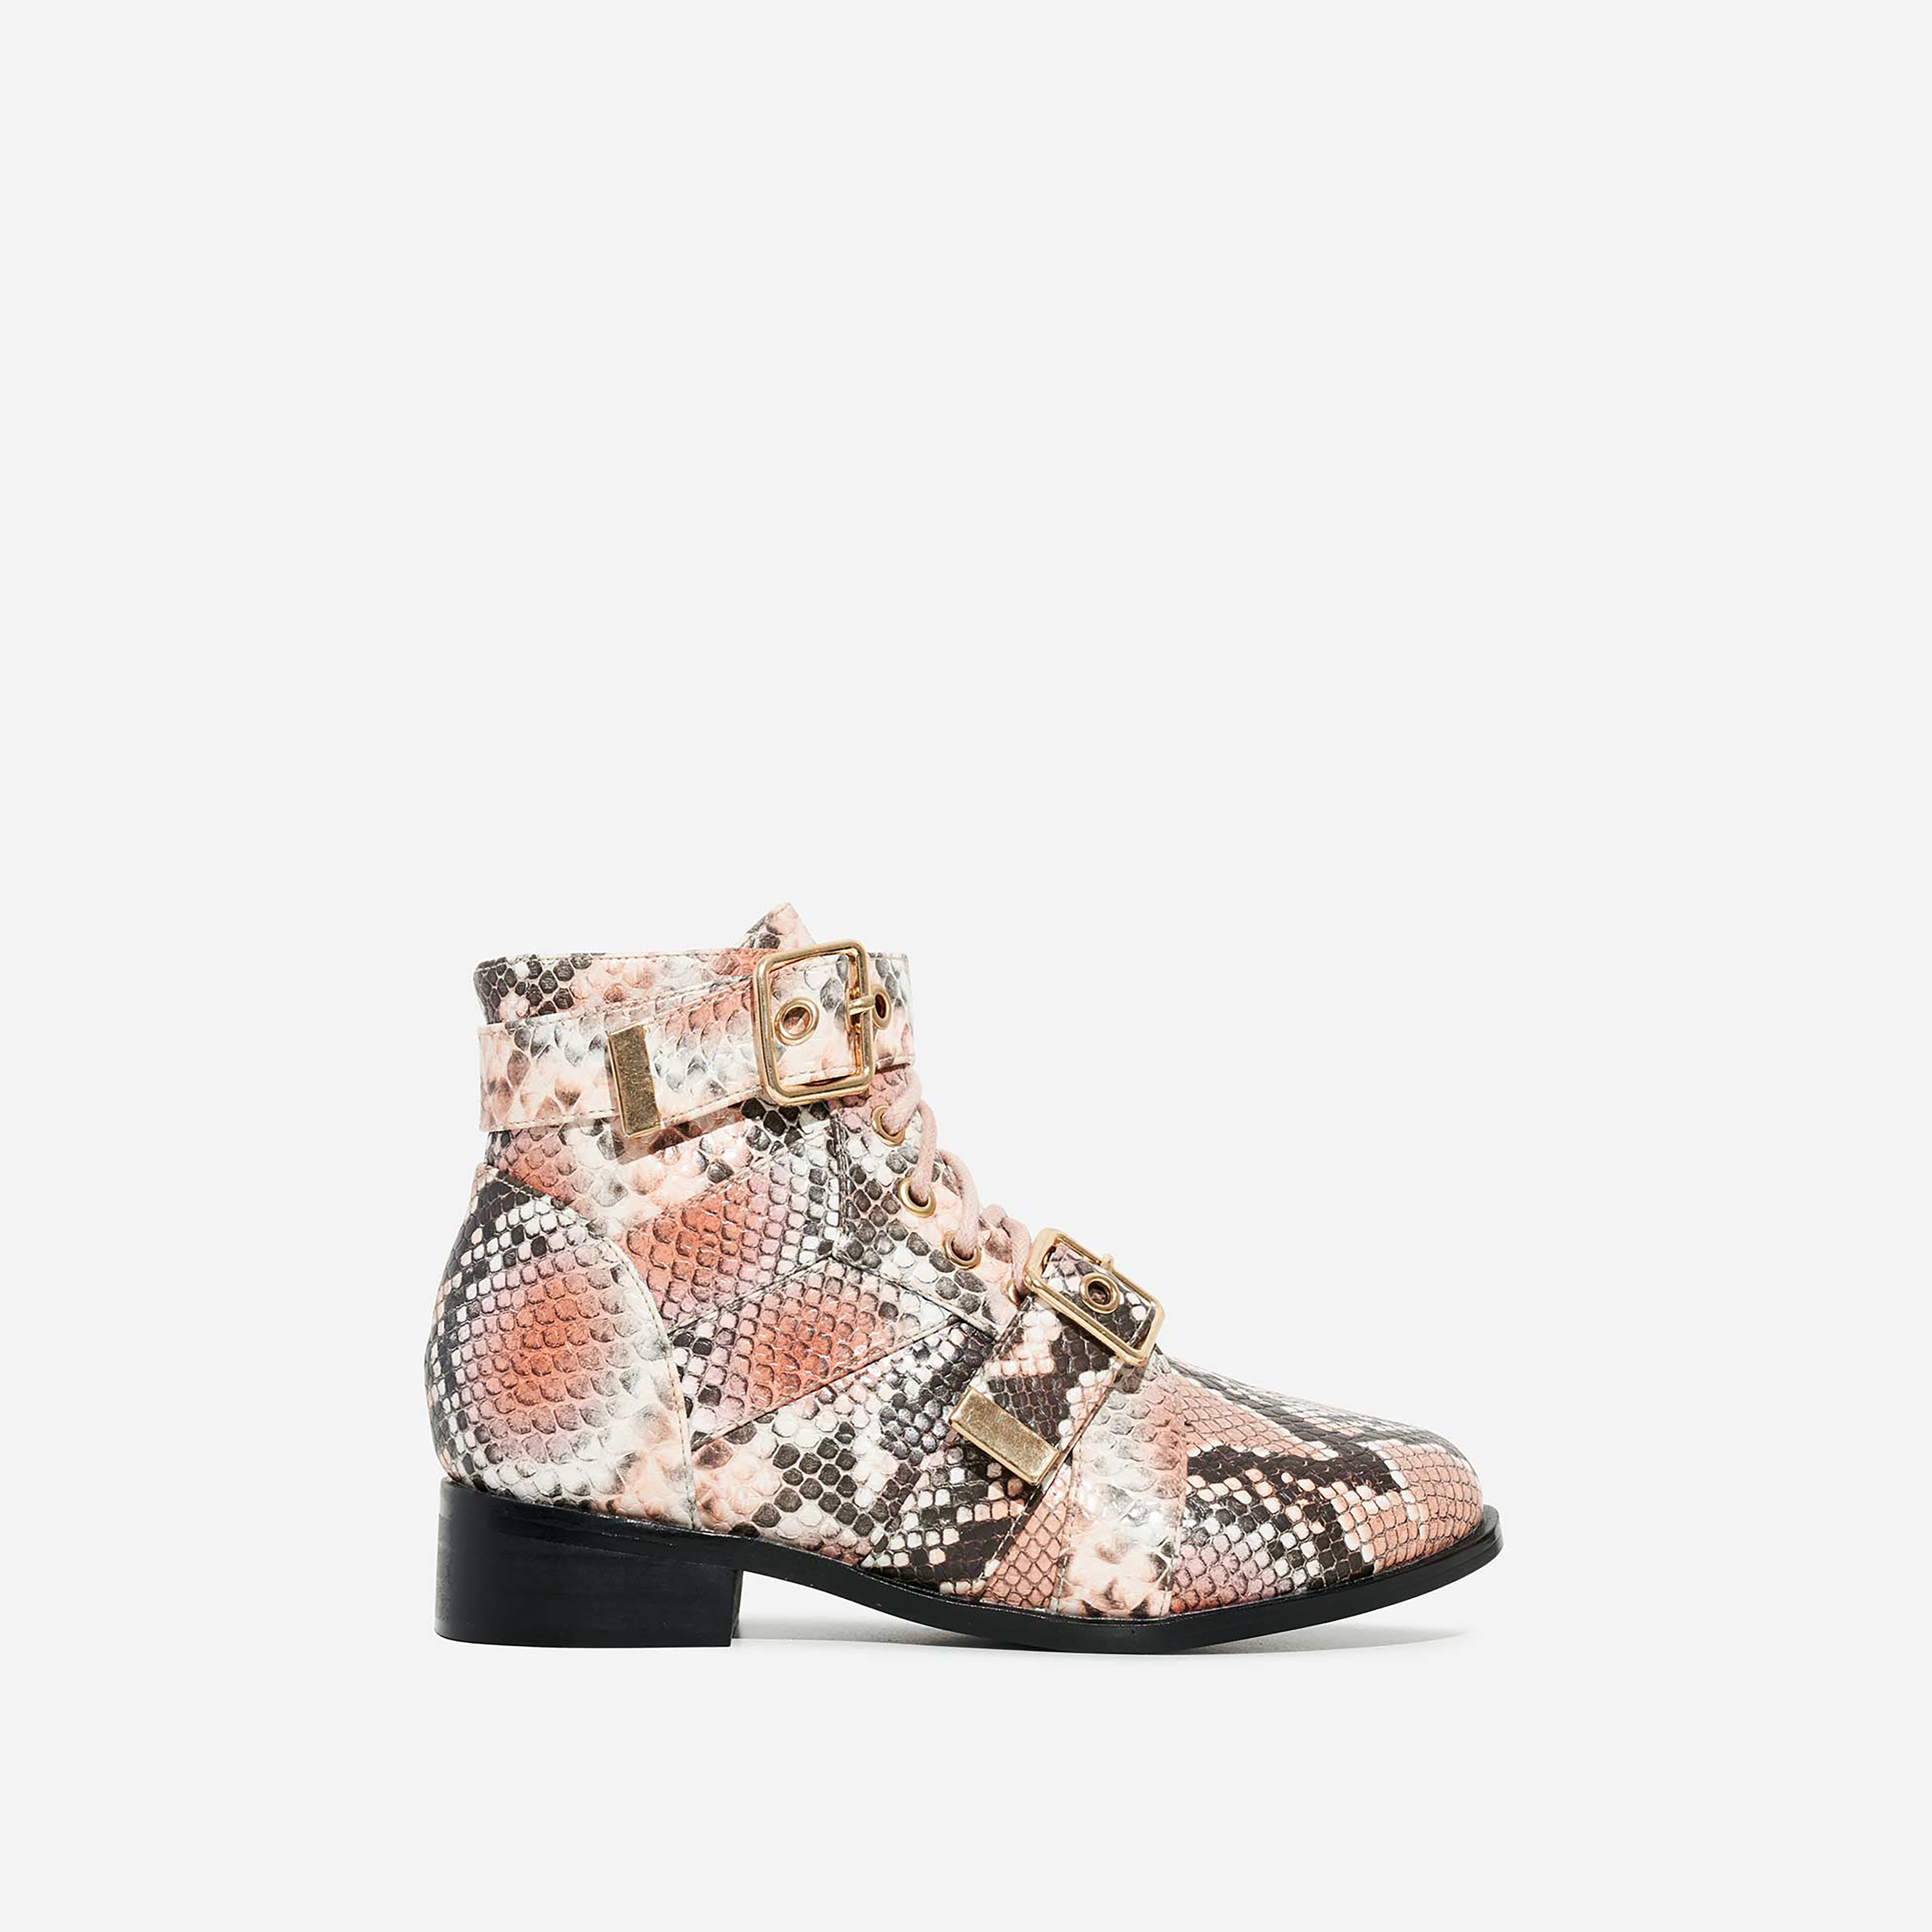 Howdy Girl's Buckle Detail Lace Up Ankle Biker Boot In Nude Snake Print Faux Leather